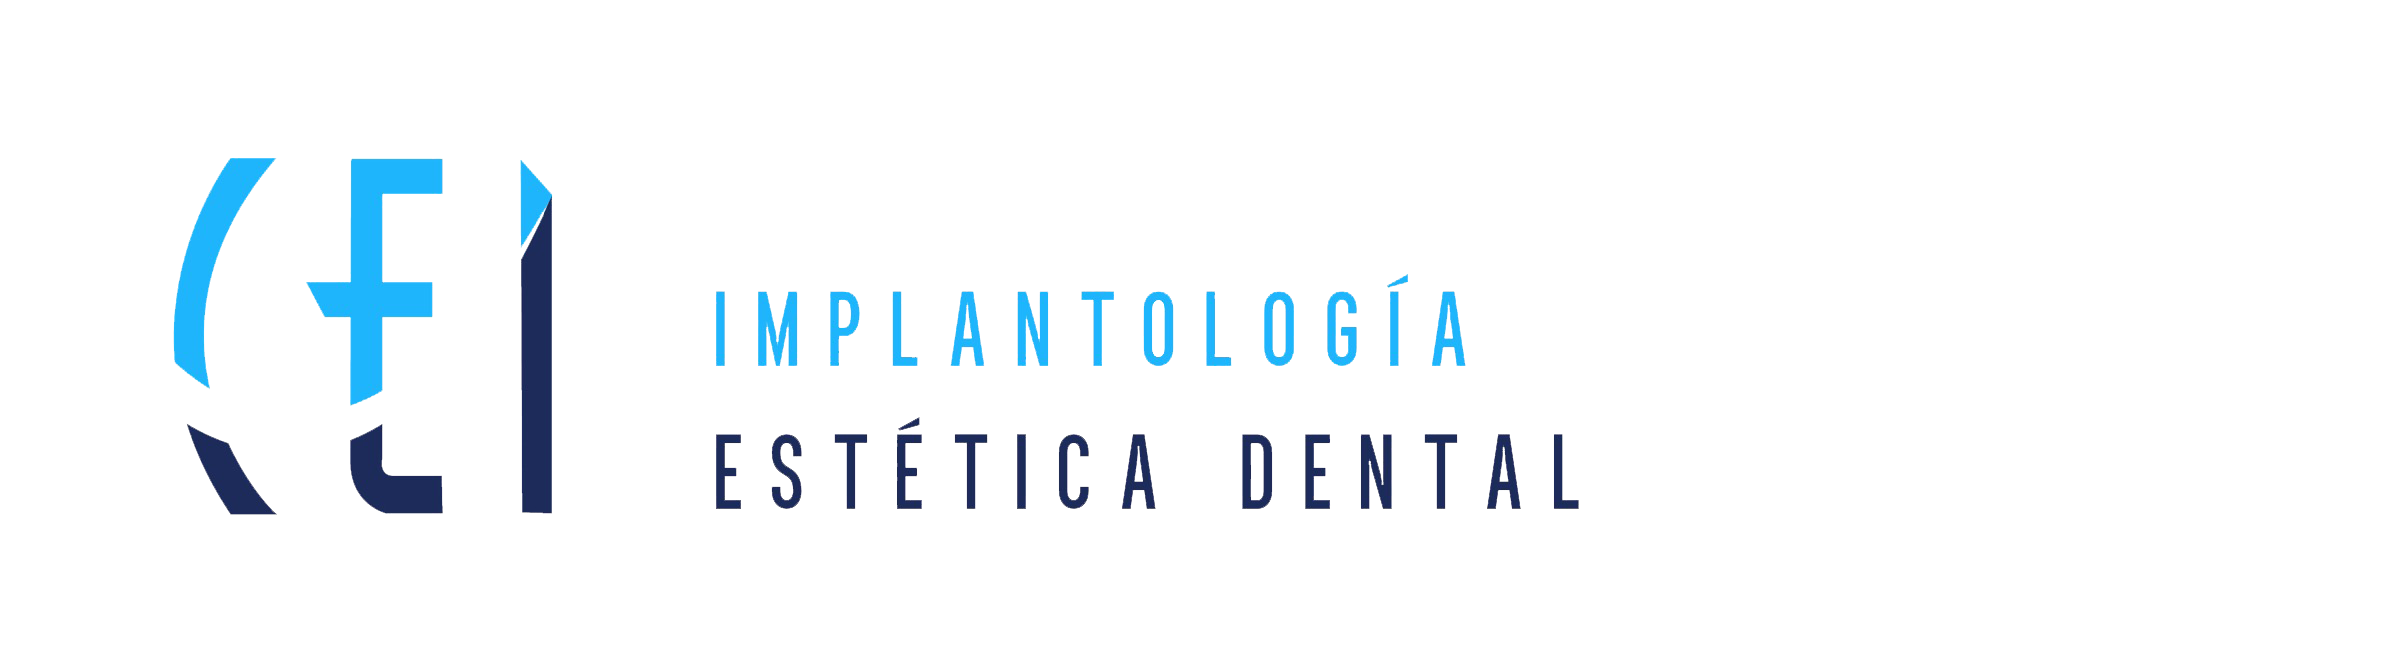 CEI Instituto de Implantología y Estética Dental